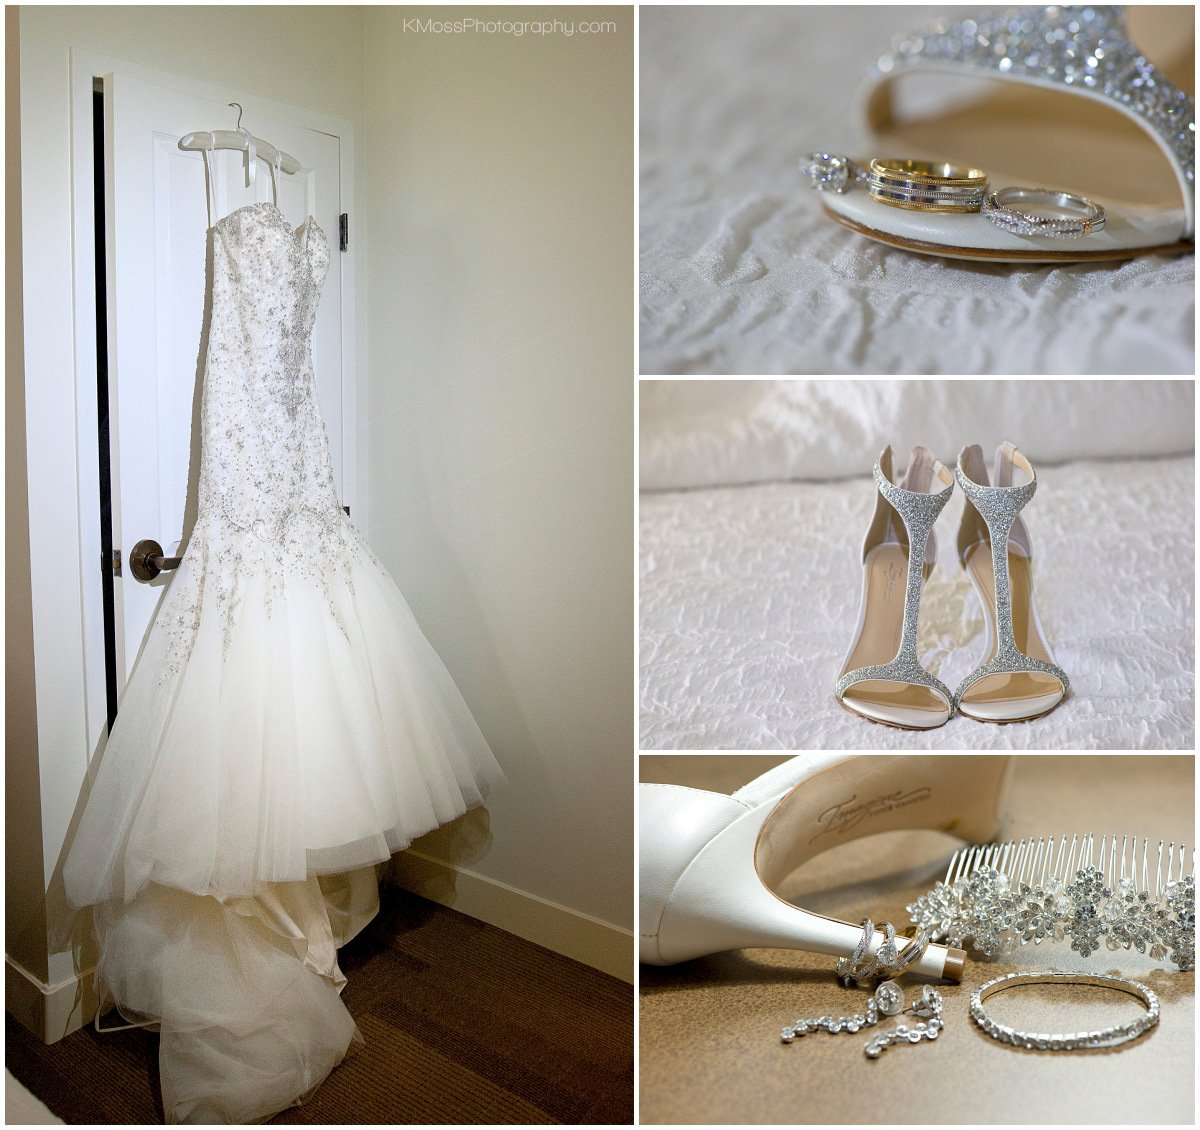 Bride Wedding Details | K. Moss Photography